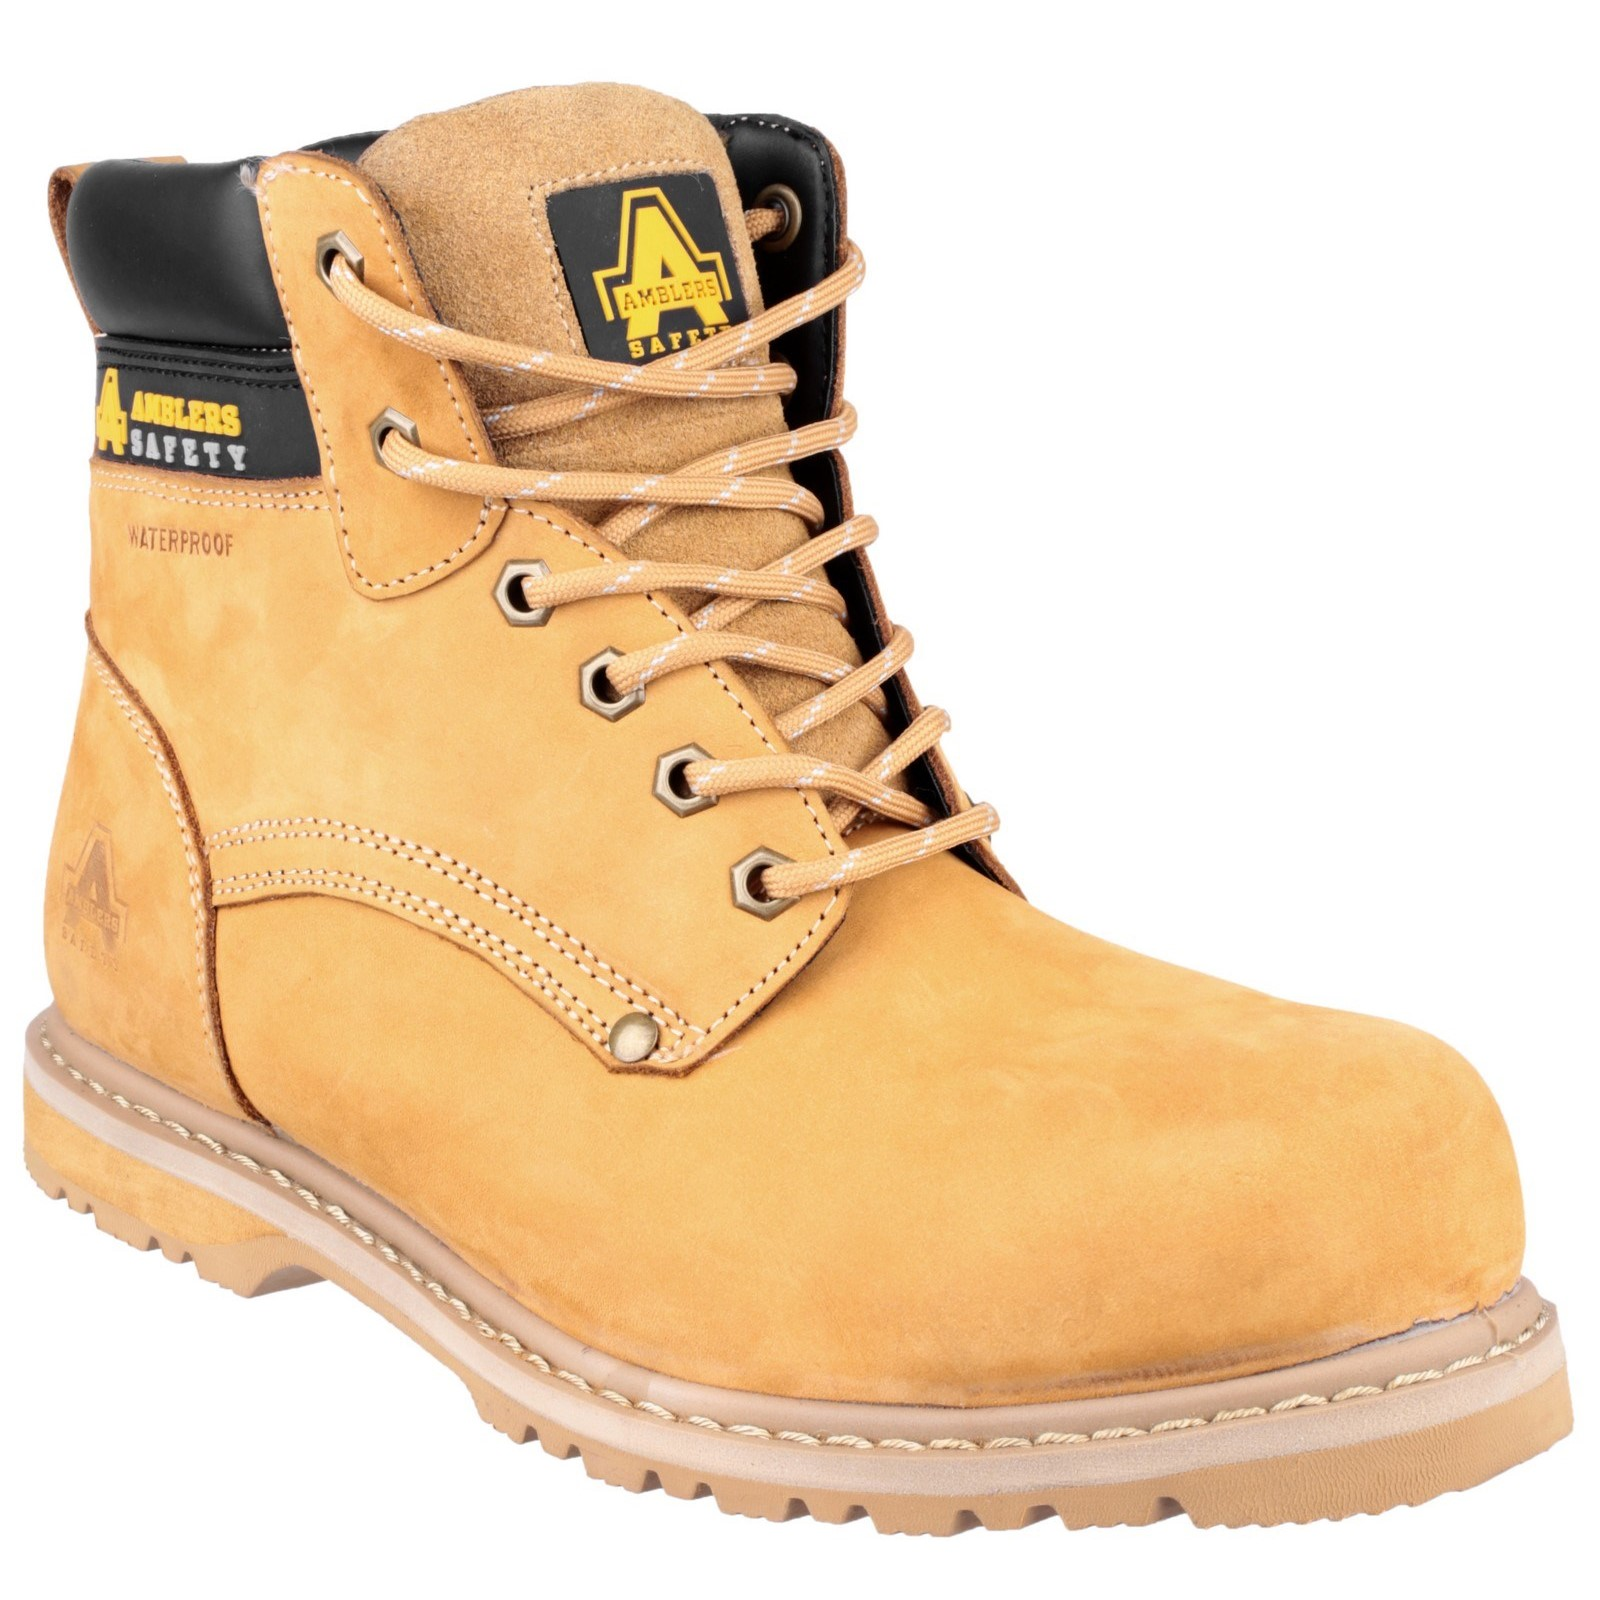 Amblers Safety Mens 147 Welted Safety Boot S3